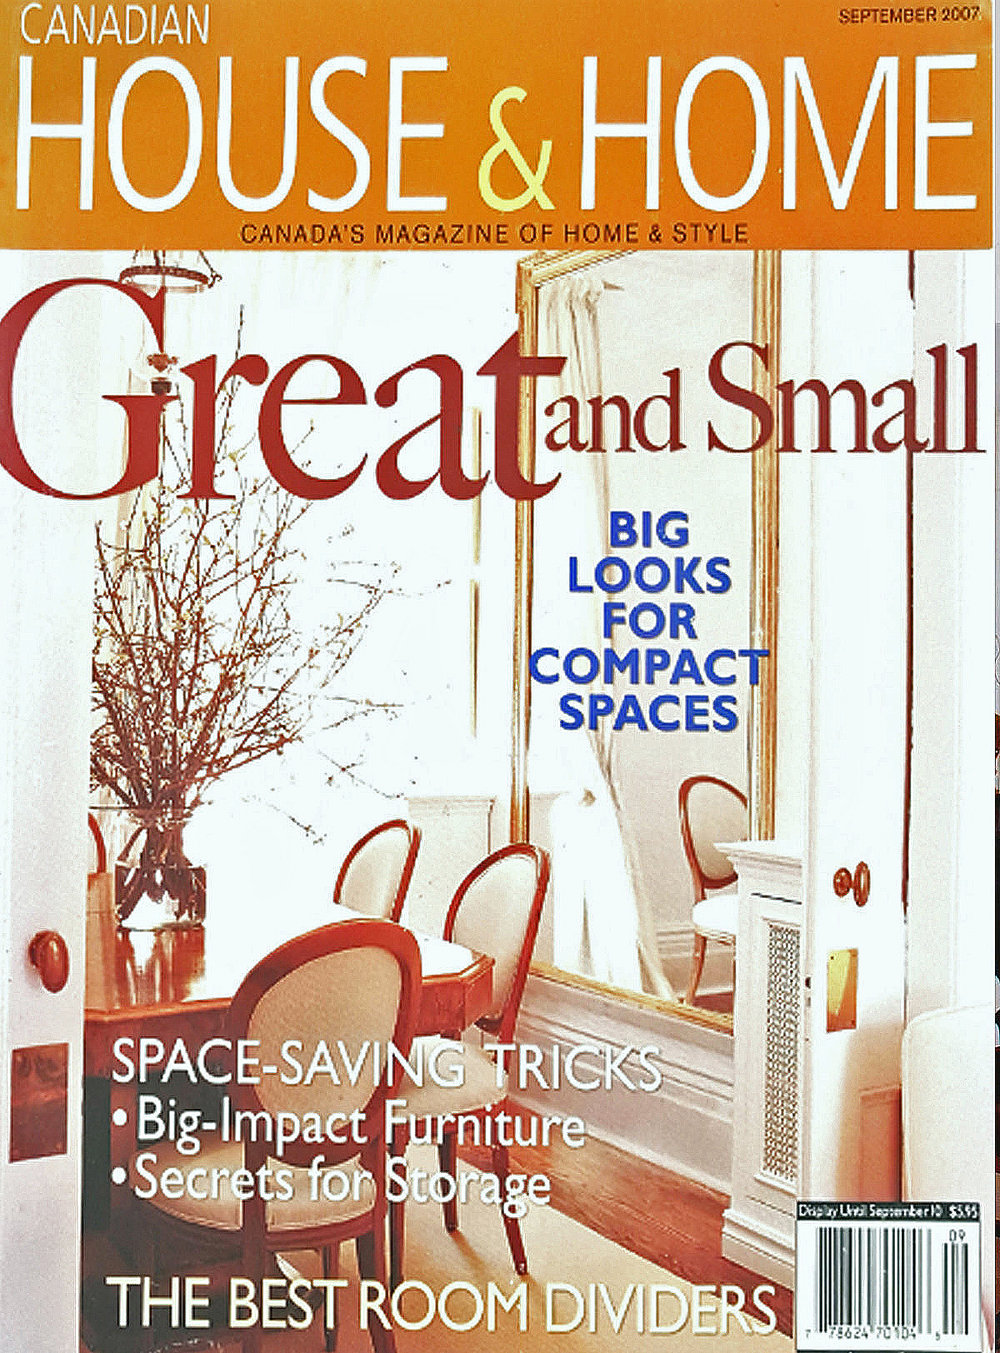 Canadian House & Home - September 2007